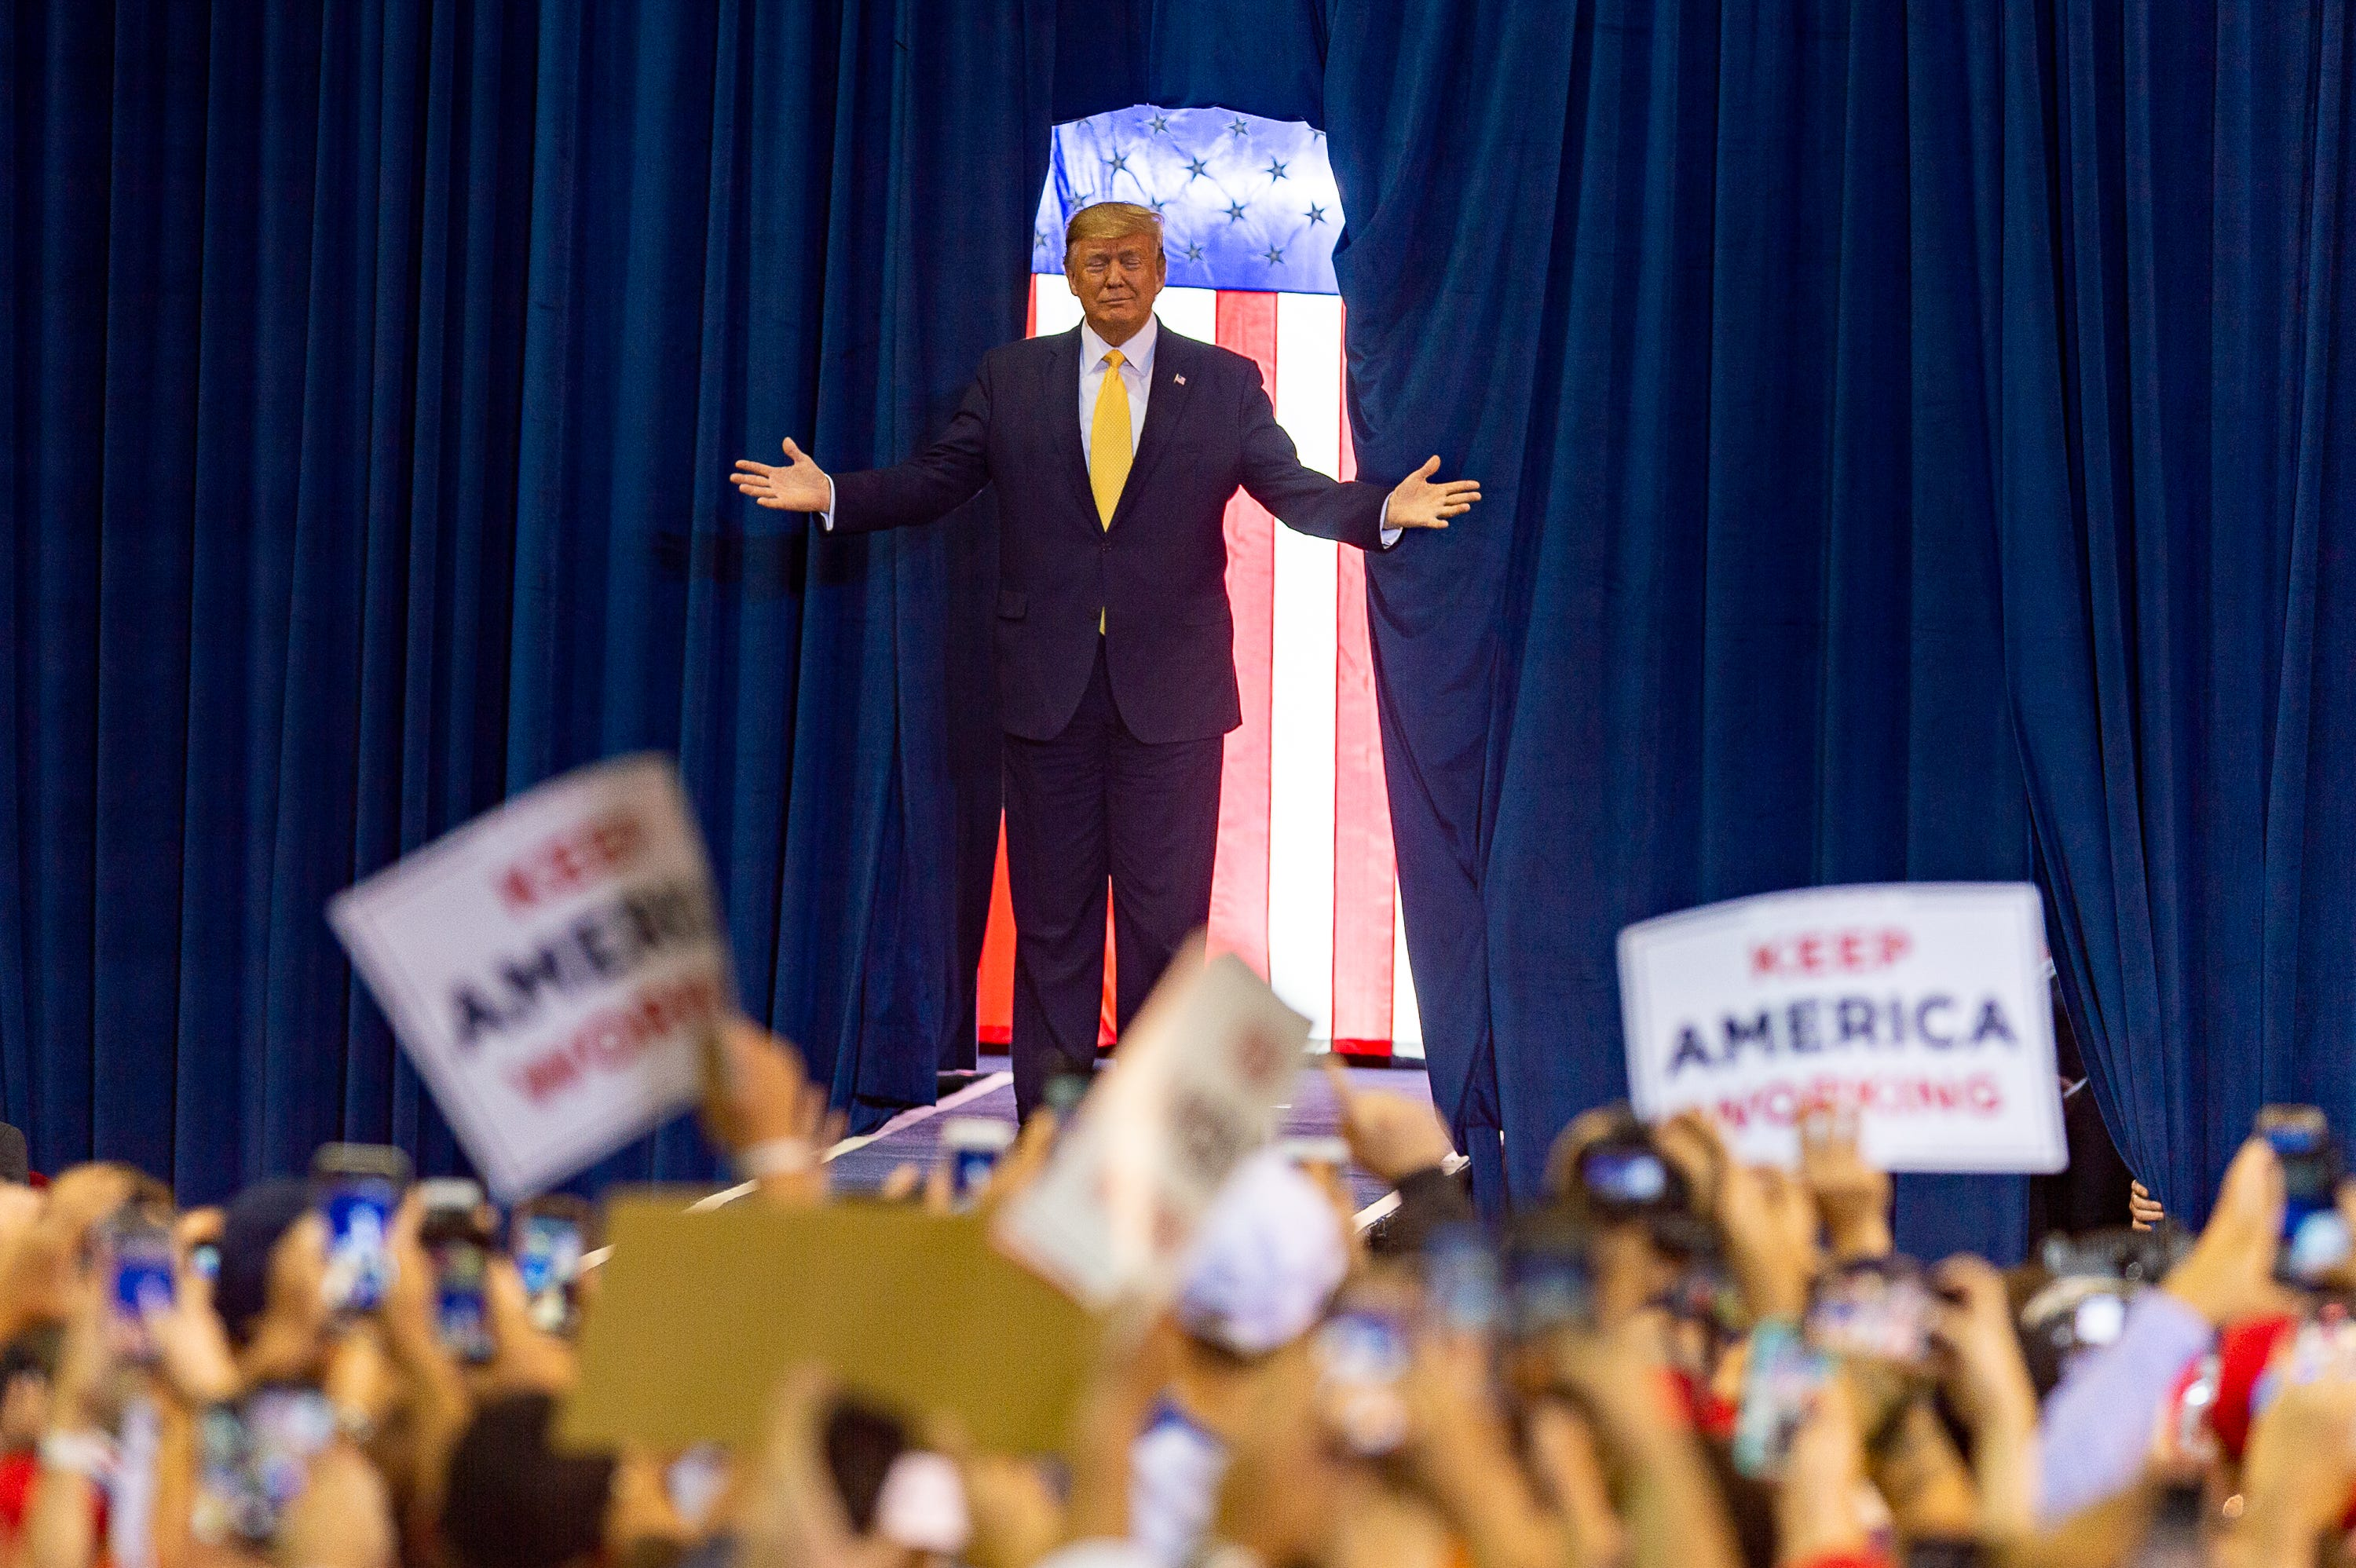 Five takeaways from Trump's Louisiana rally on impeachment, China and election